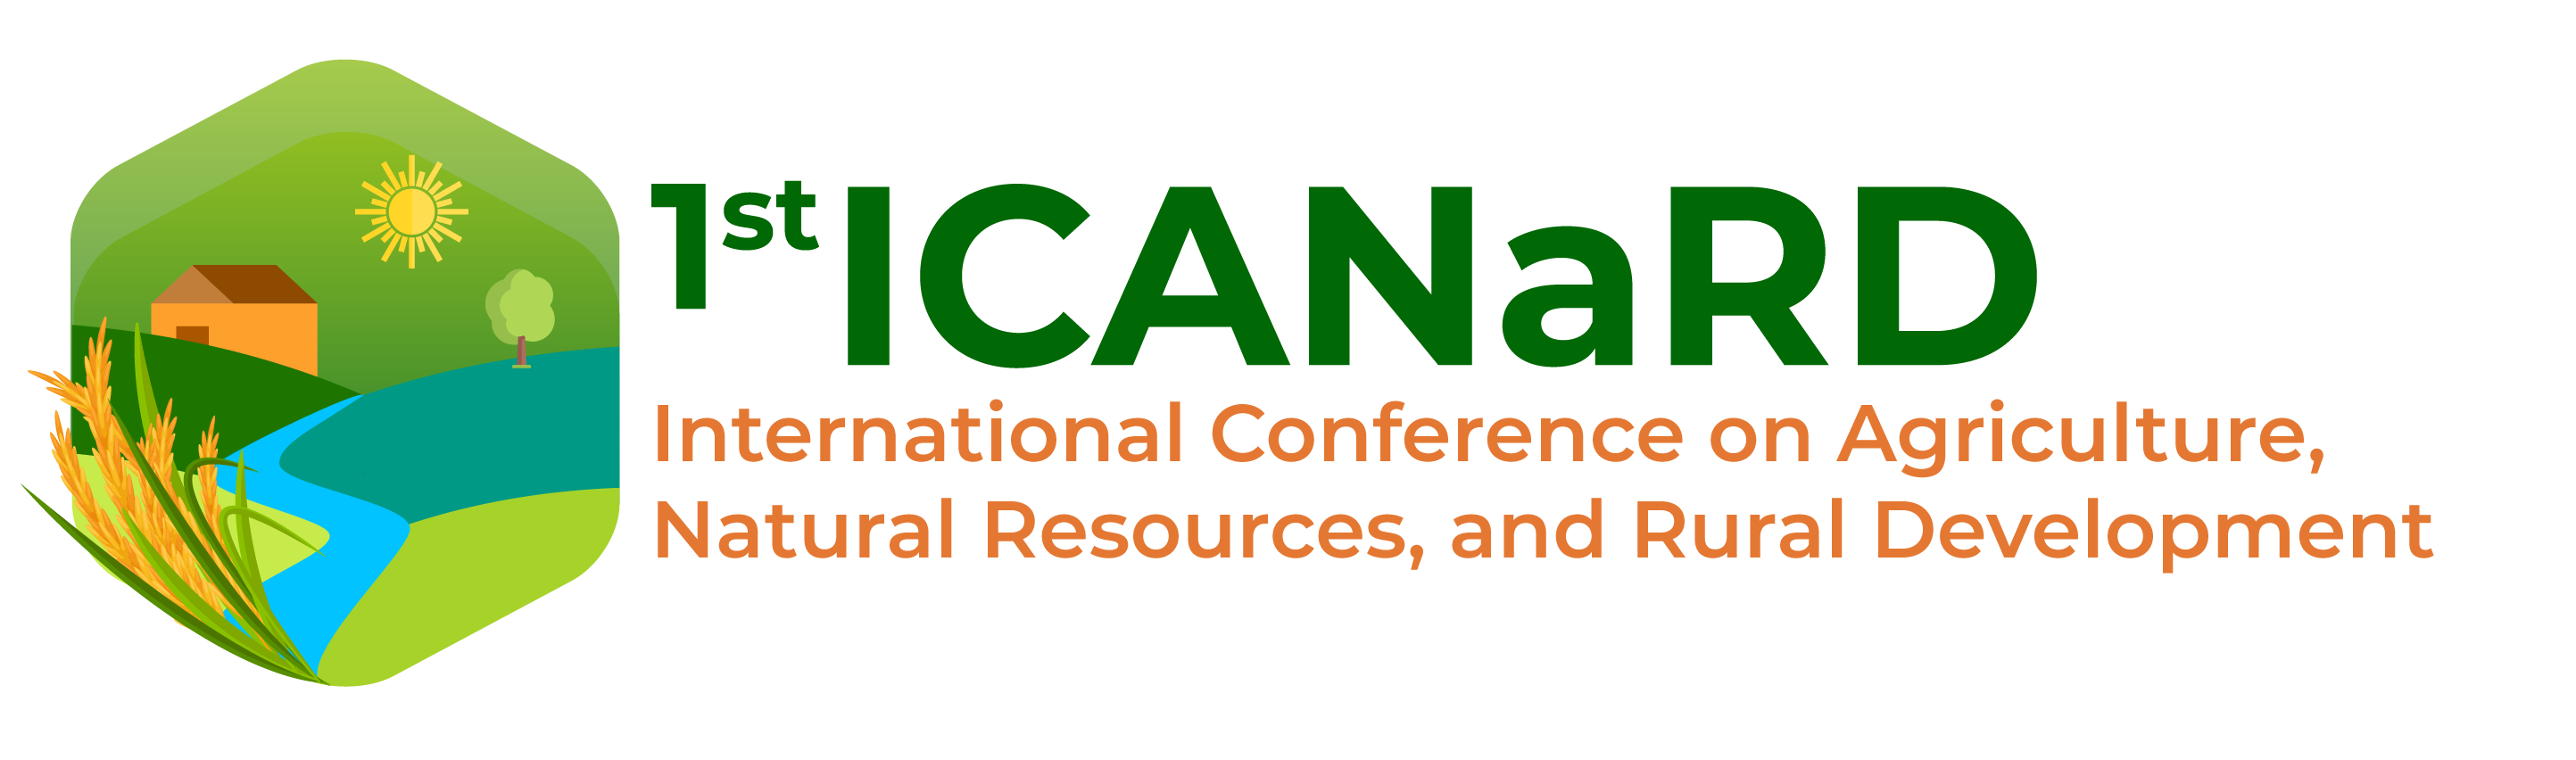 First International Conference on Agriculture, Natural Resources, and Rural Development